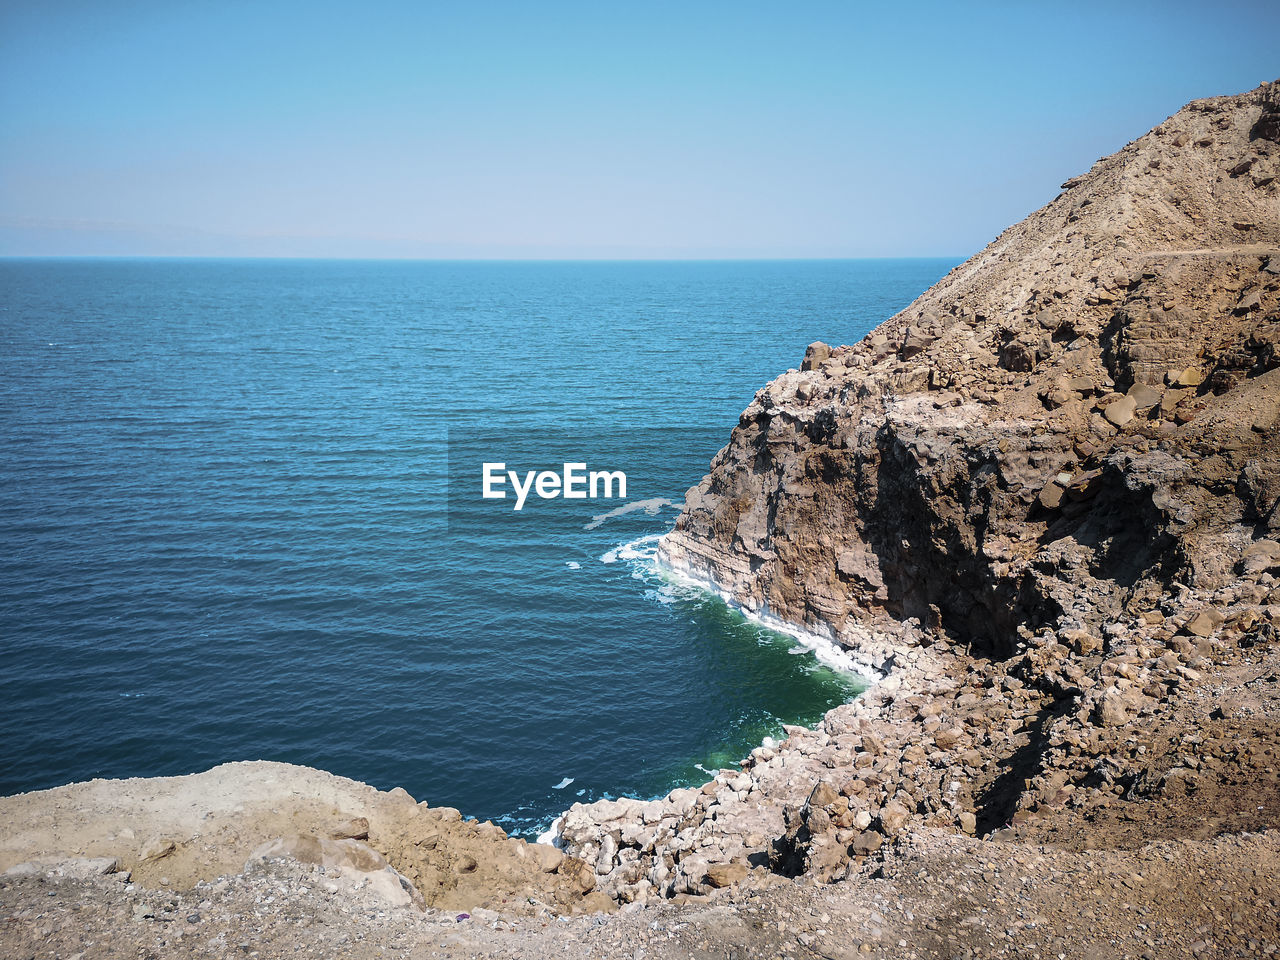 Scenic view of sea against clear sky. the dead sea from the jordanian coast.